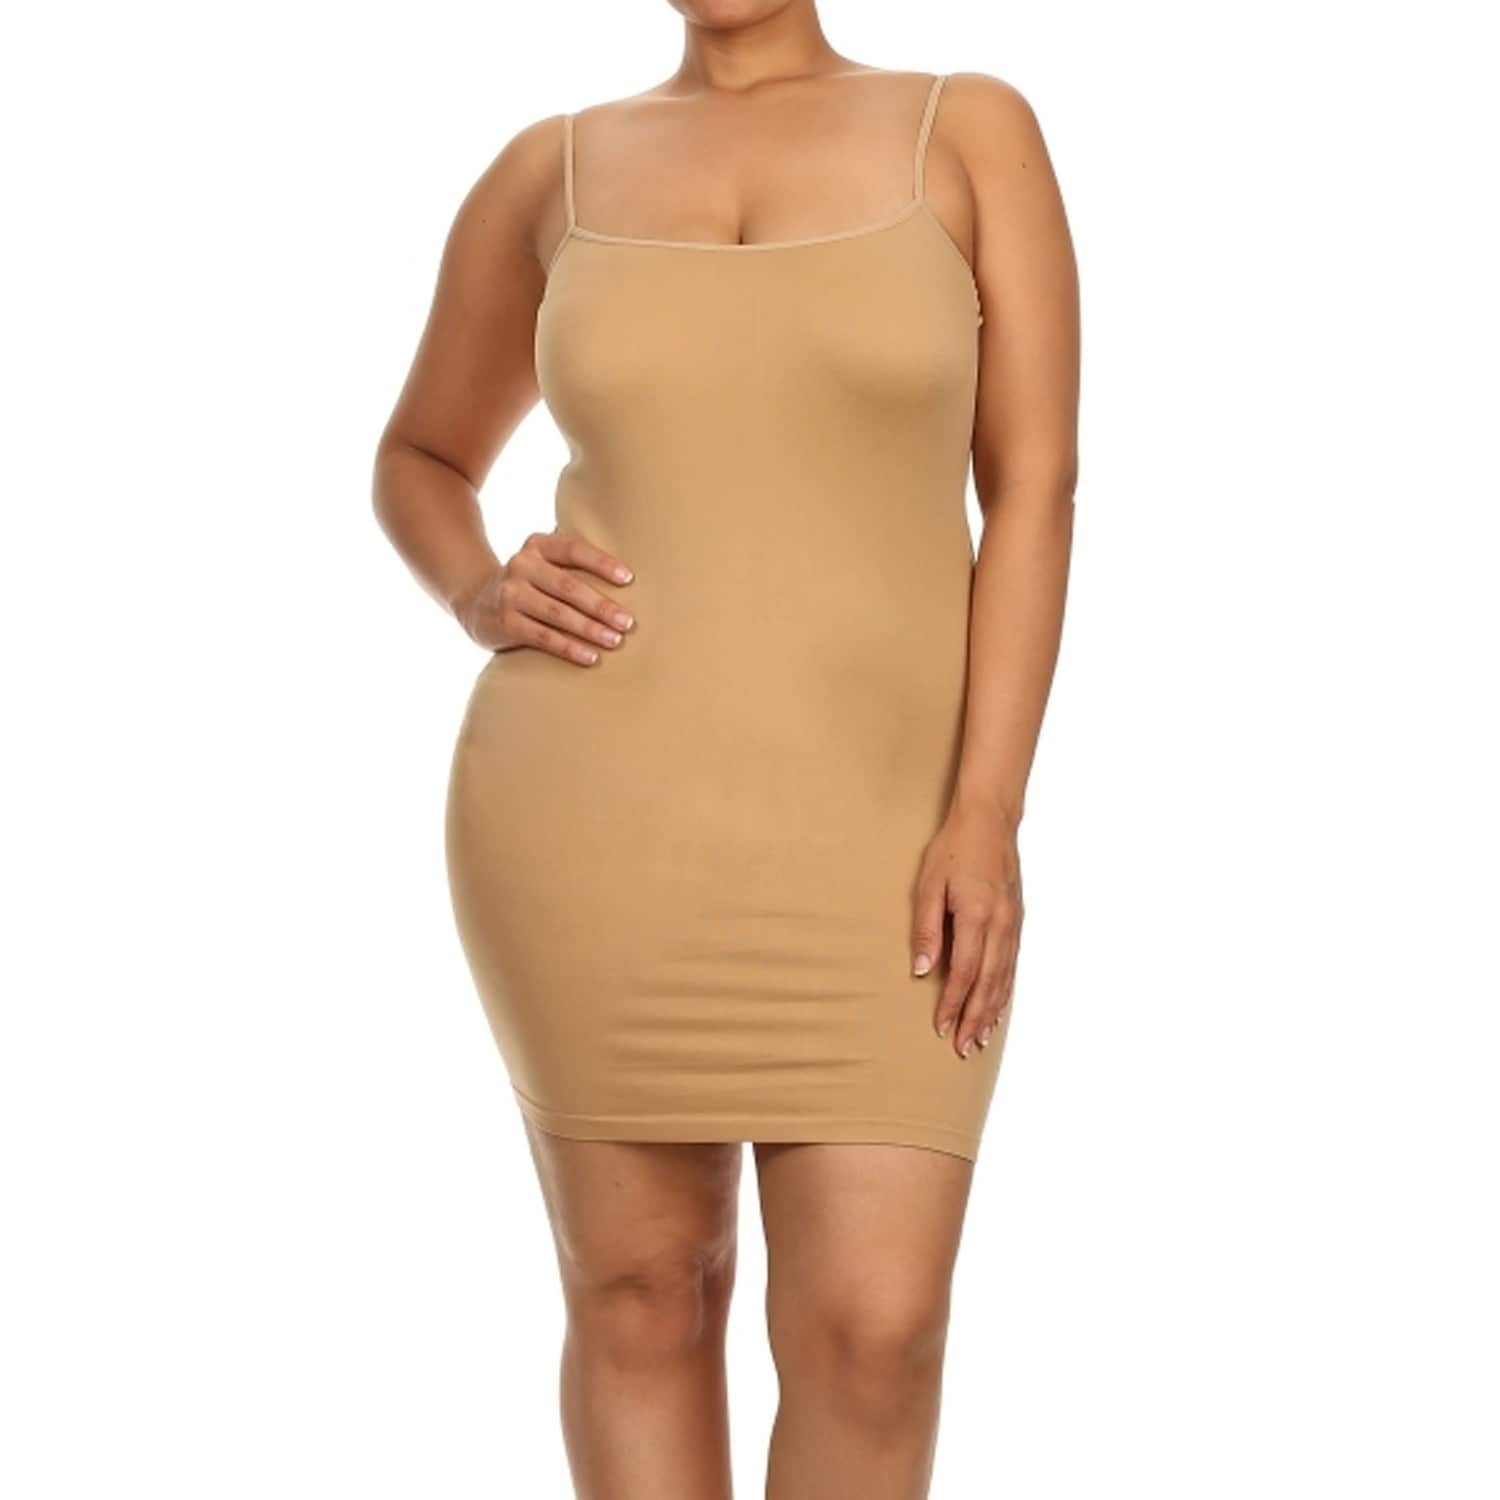 Women\'s Solid Plus Size Seamless Go-To Comfy Tank Top Dress